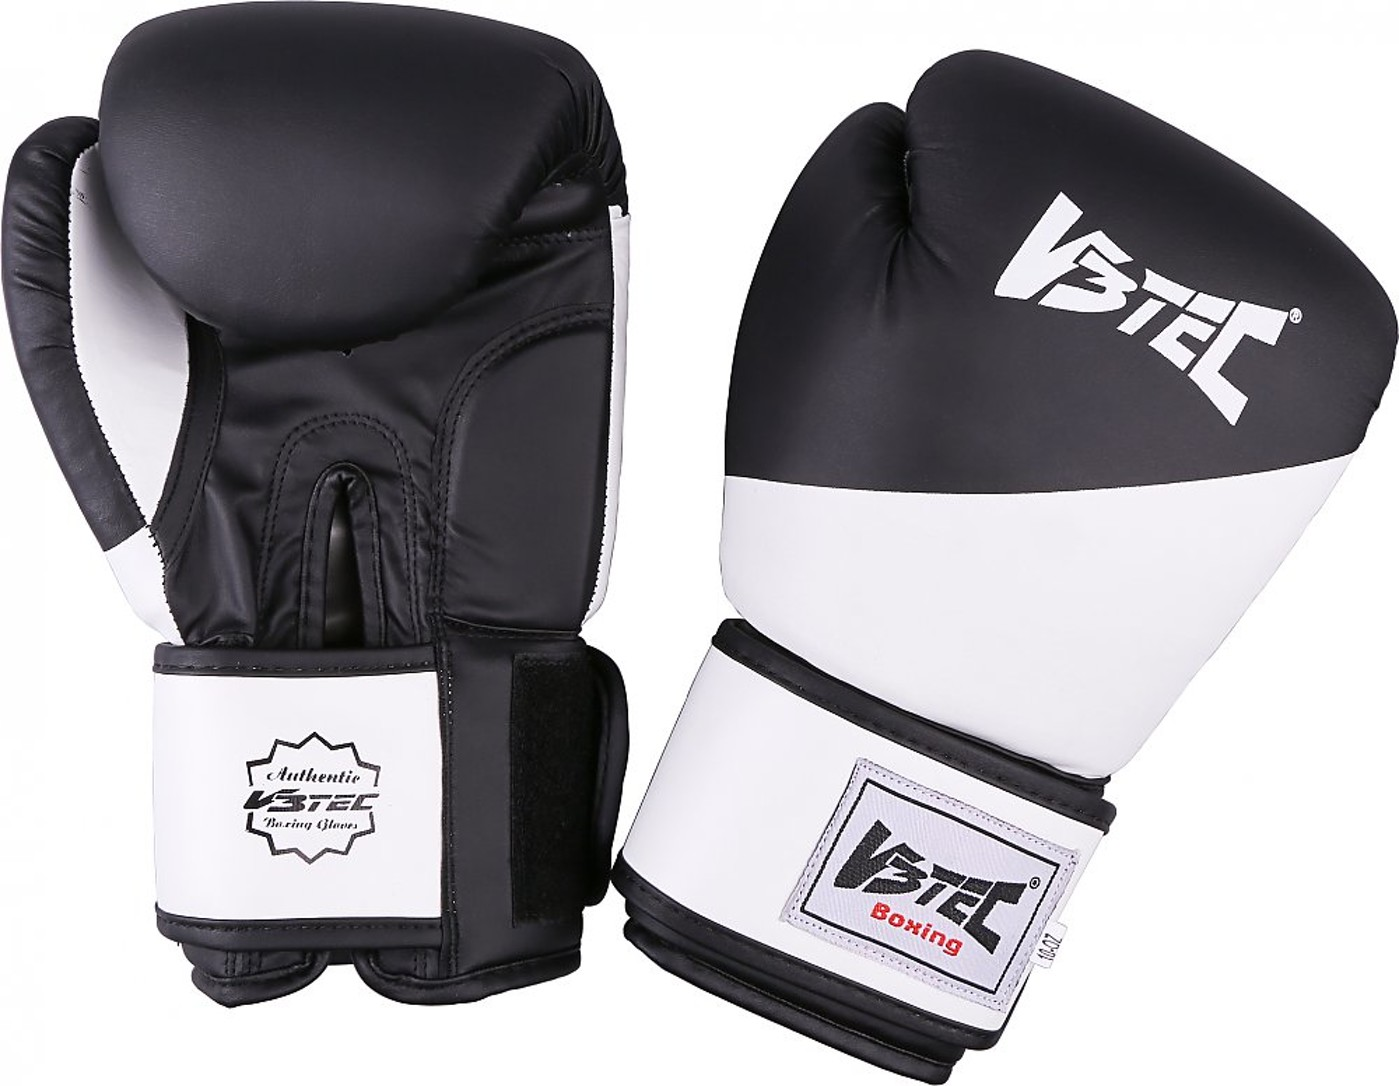 V3TEC CLUB BOXING GLOVE